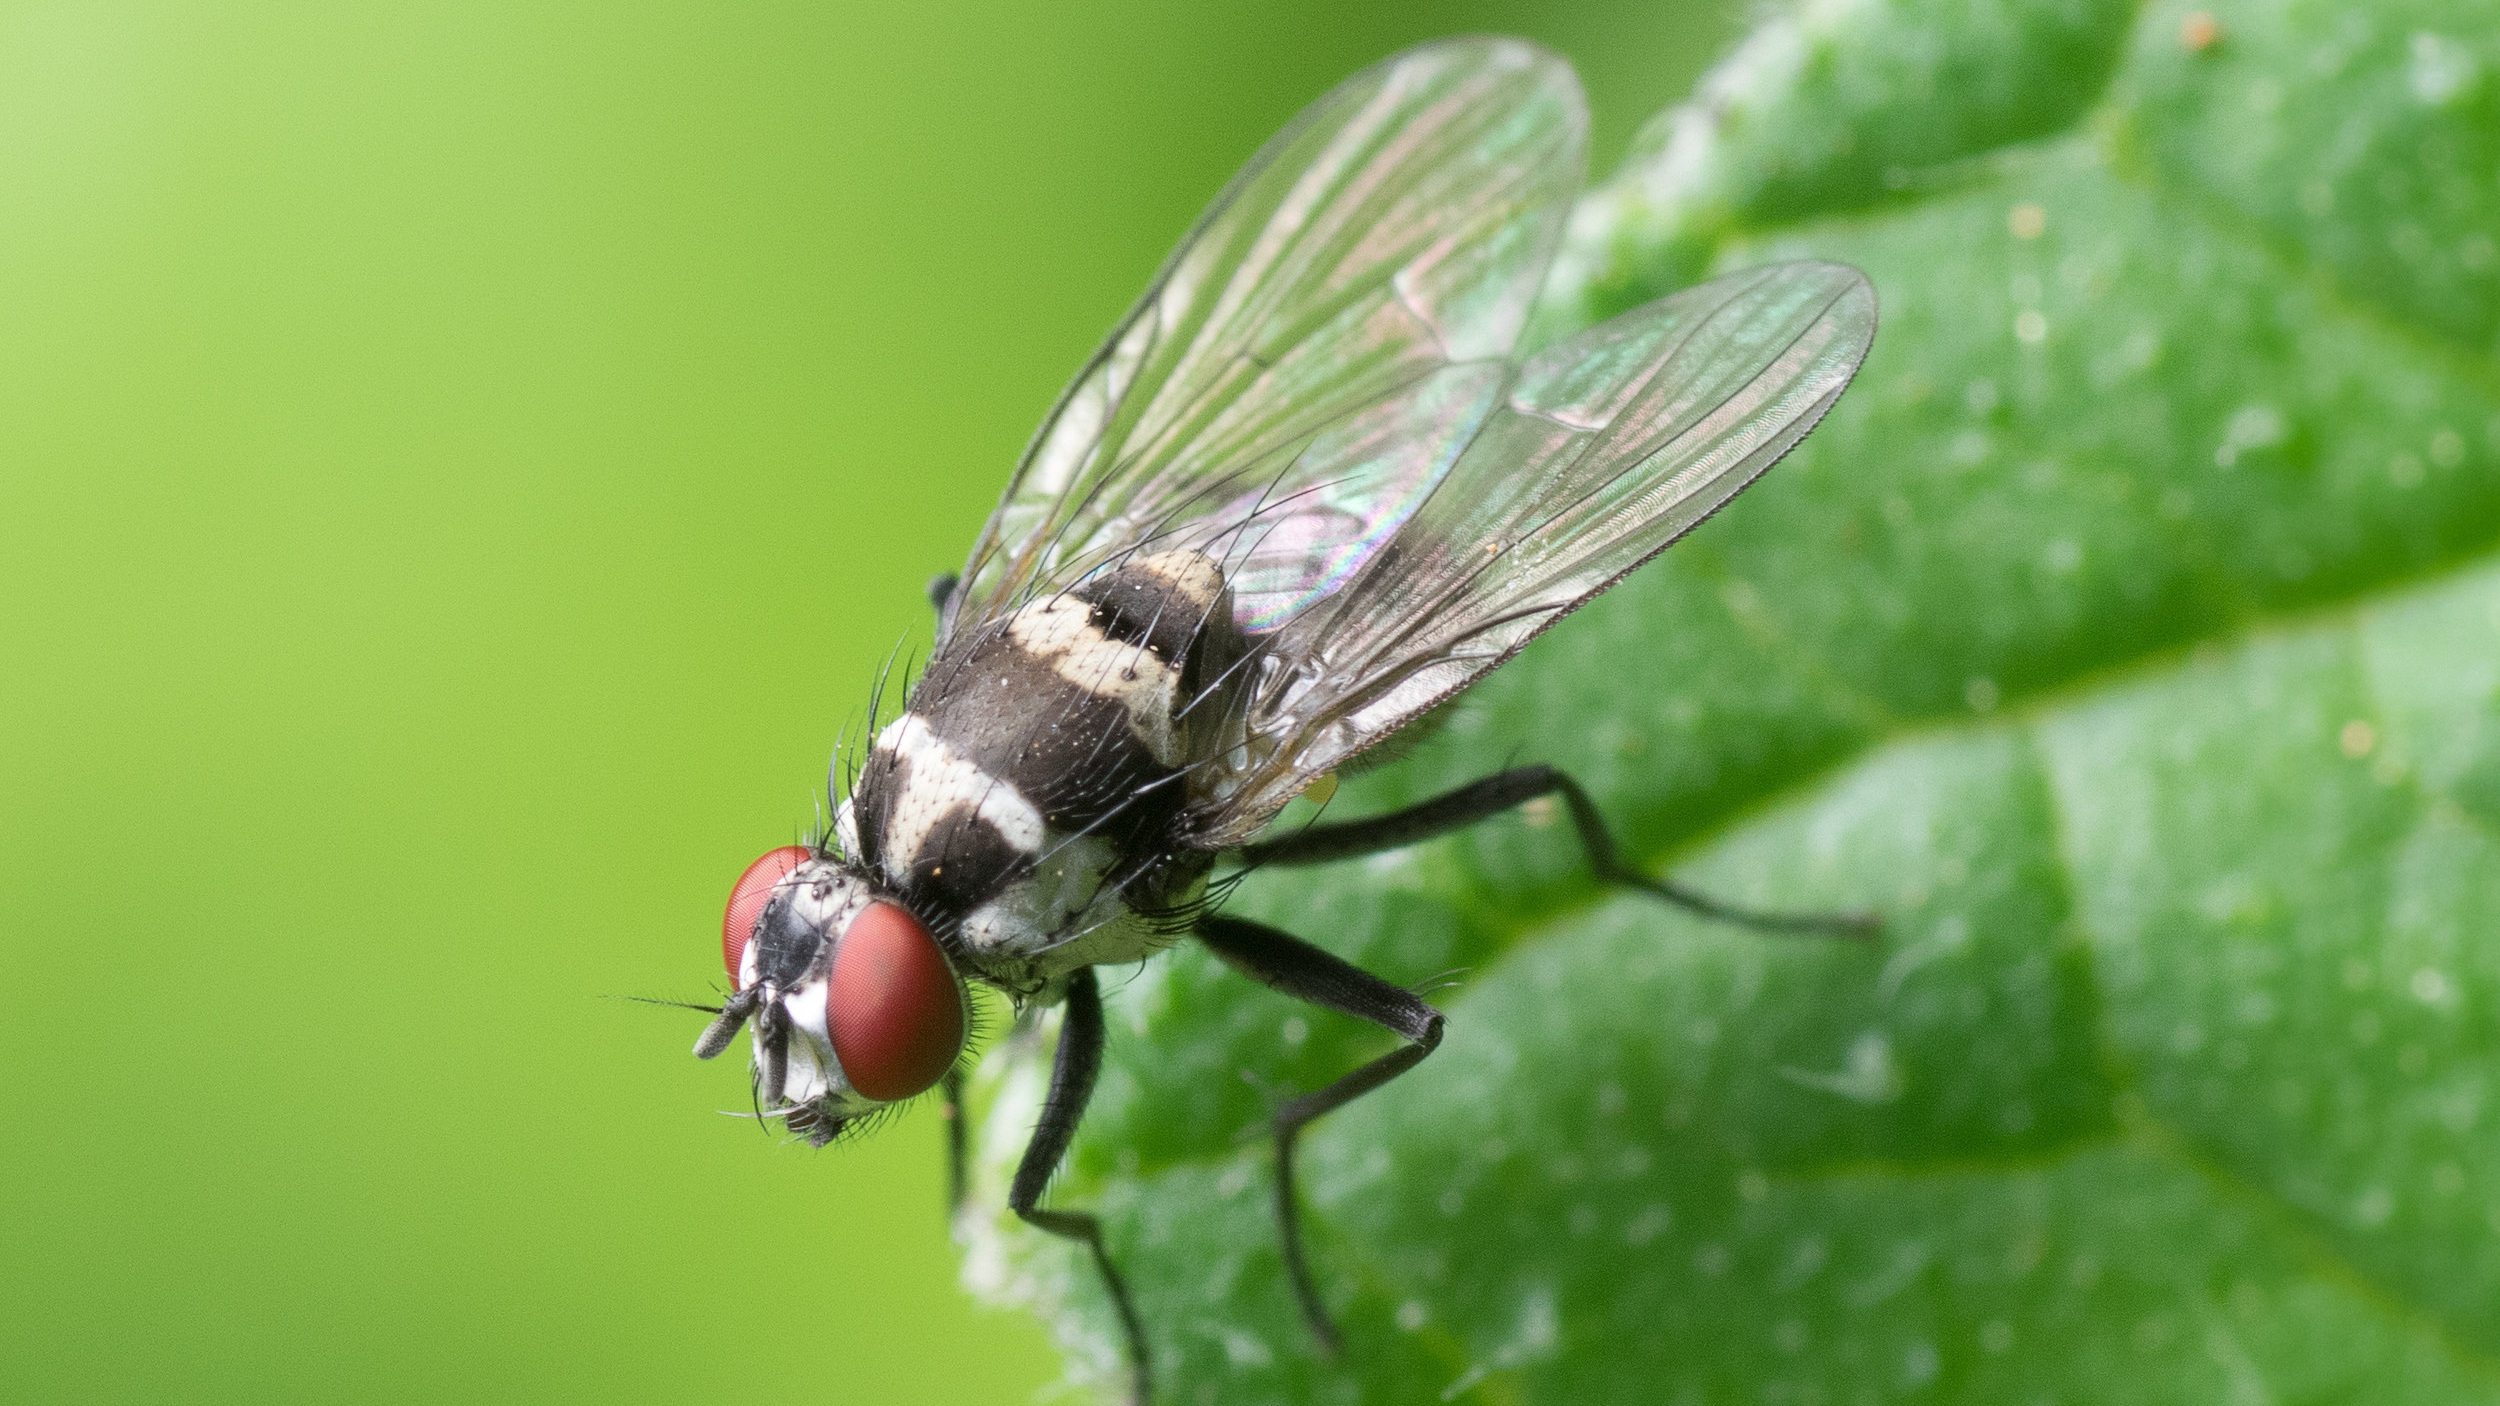 Canva+-+Black+and+Red+Flying+Insect+Perched+on+Green+Leaf.jpg